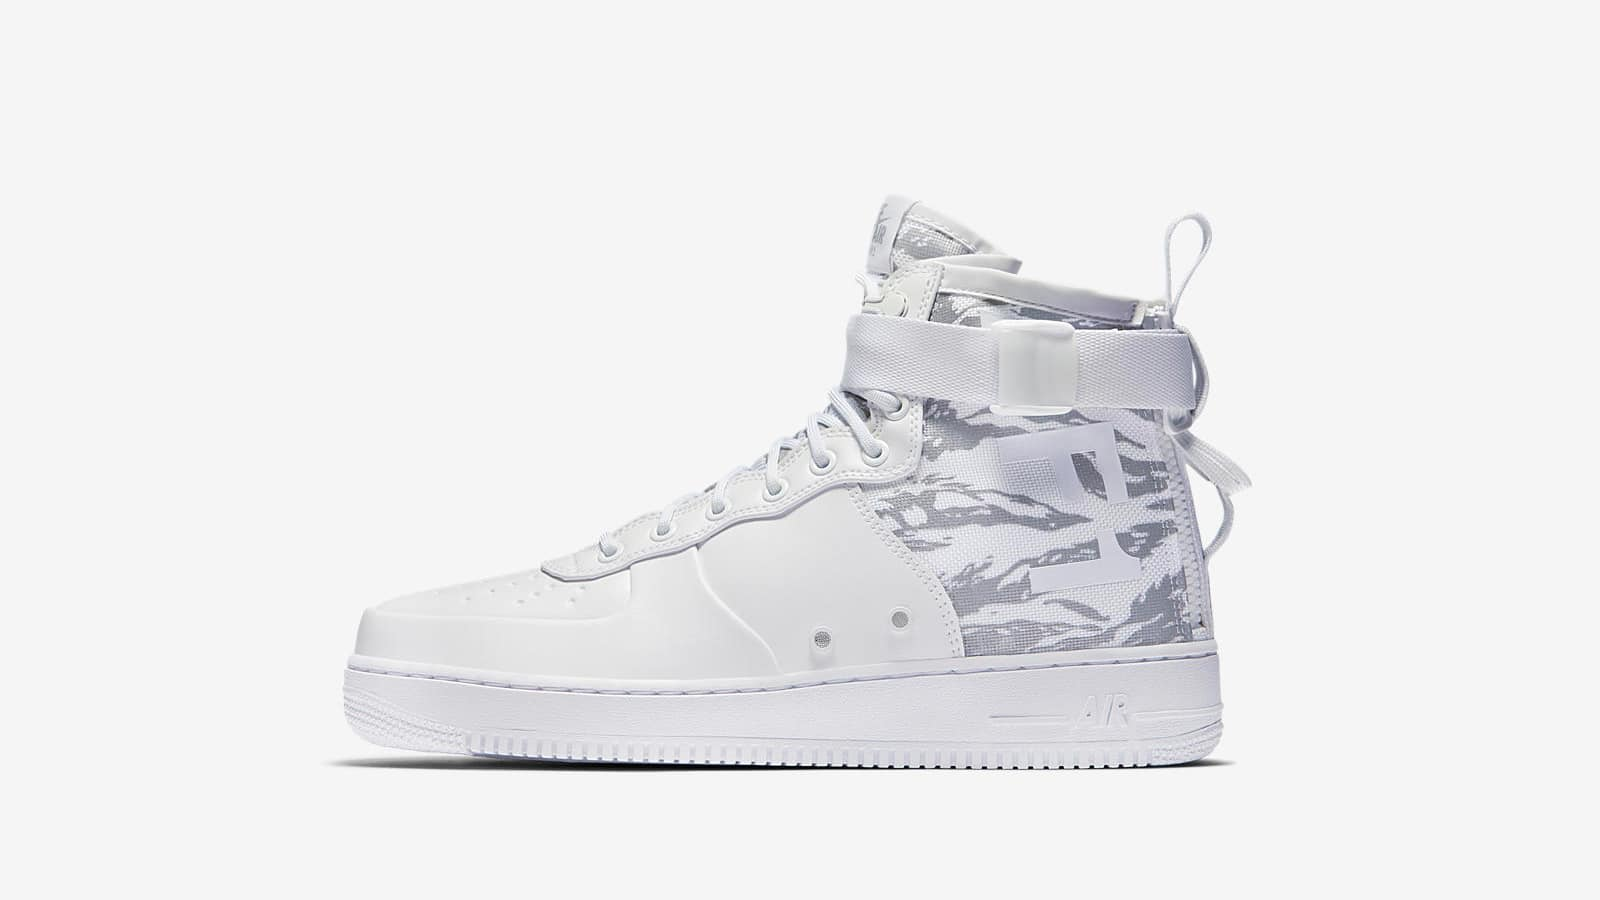 END. Features | Nike Winter Whites Pack Now Online